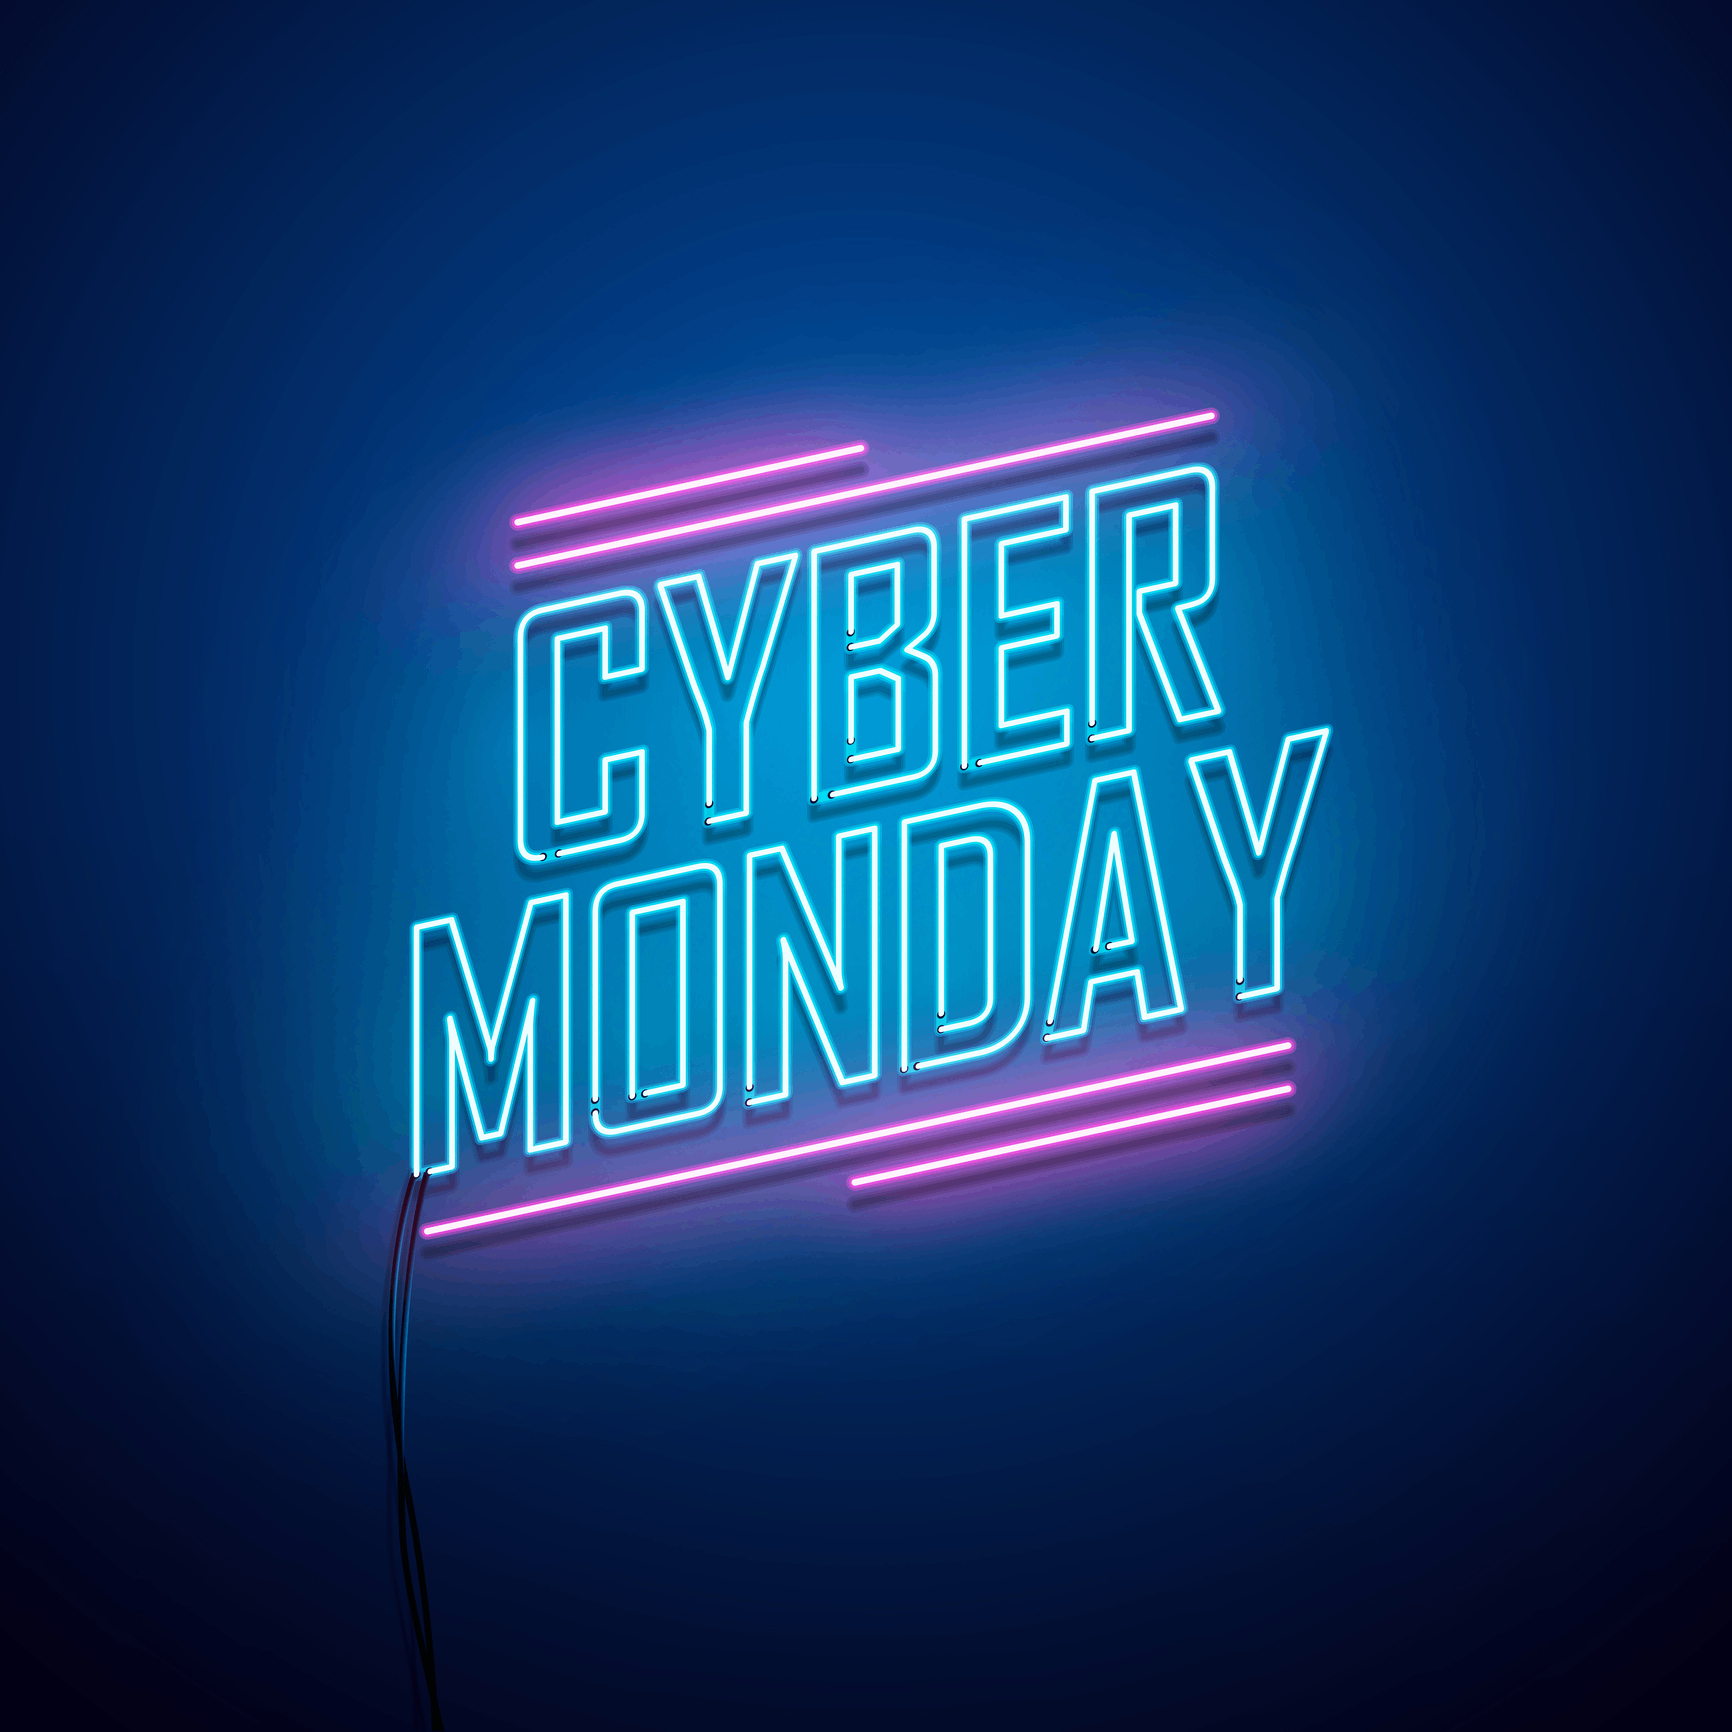 2019 cyber monday deals for photographers image